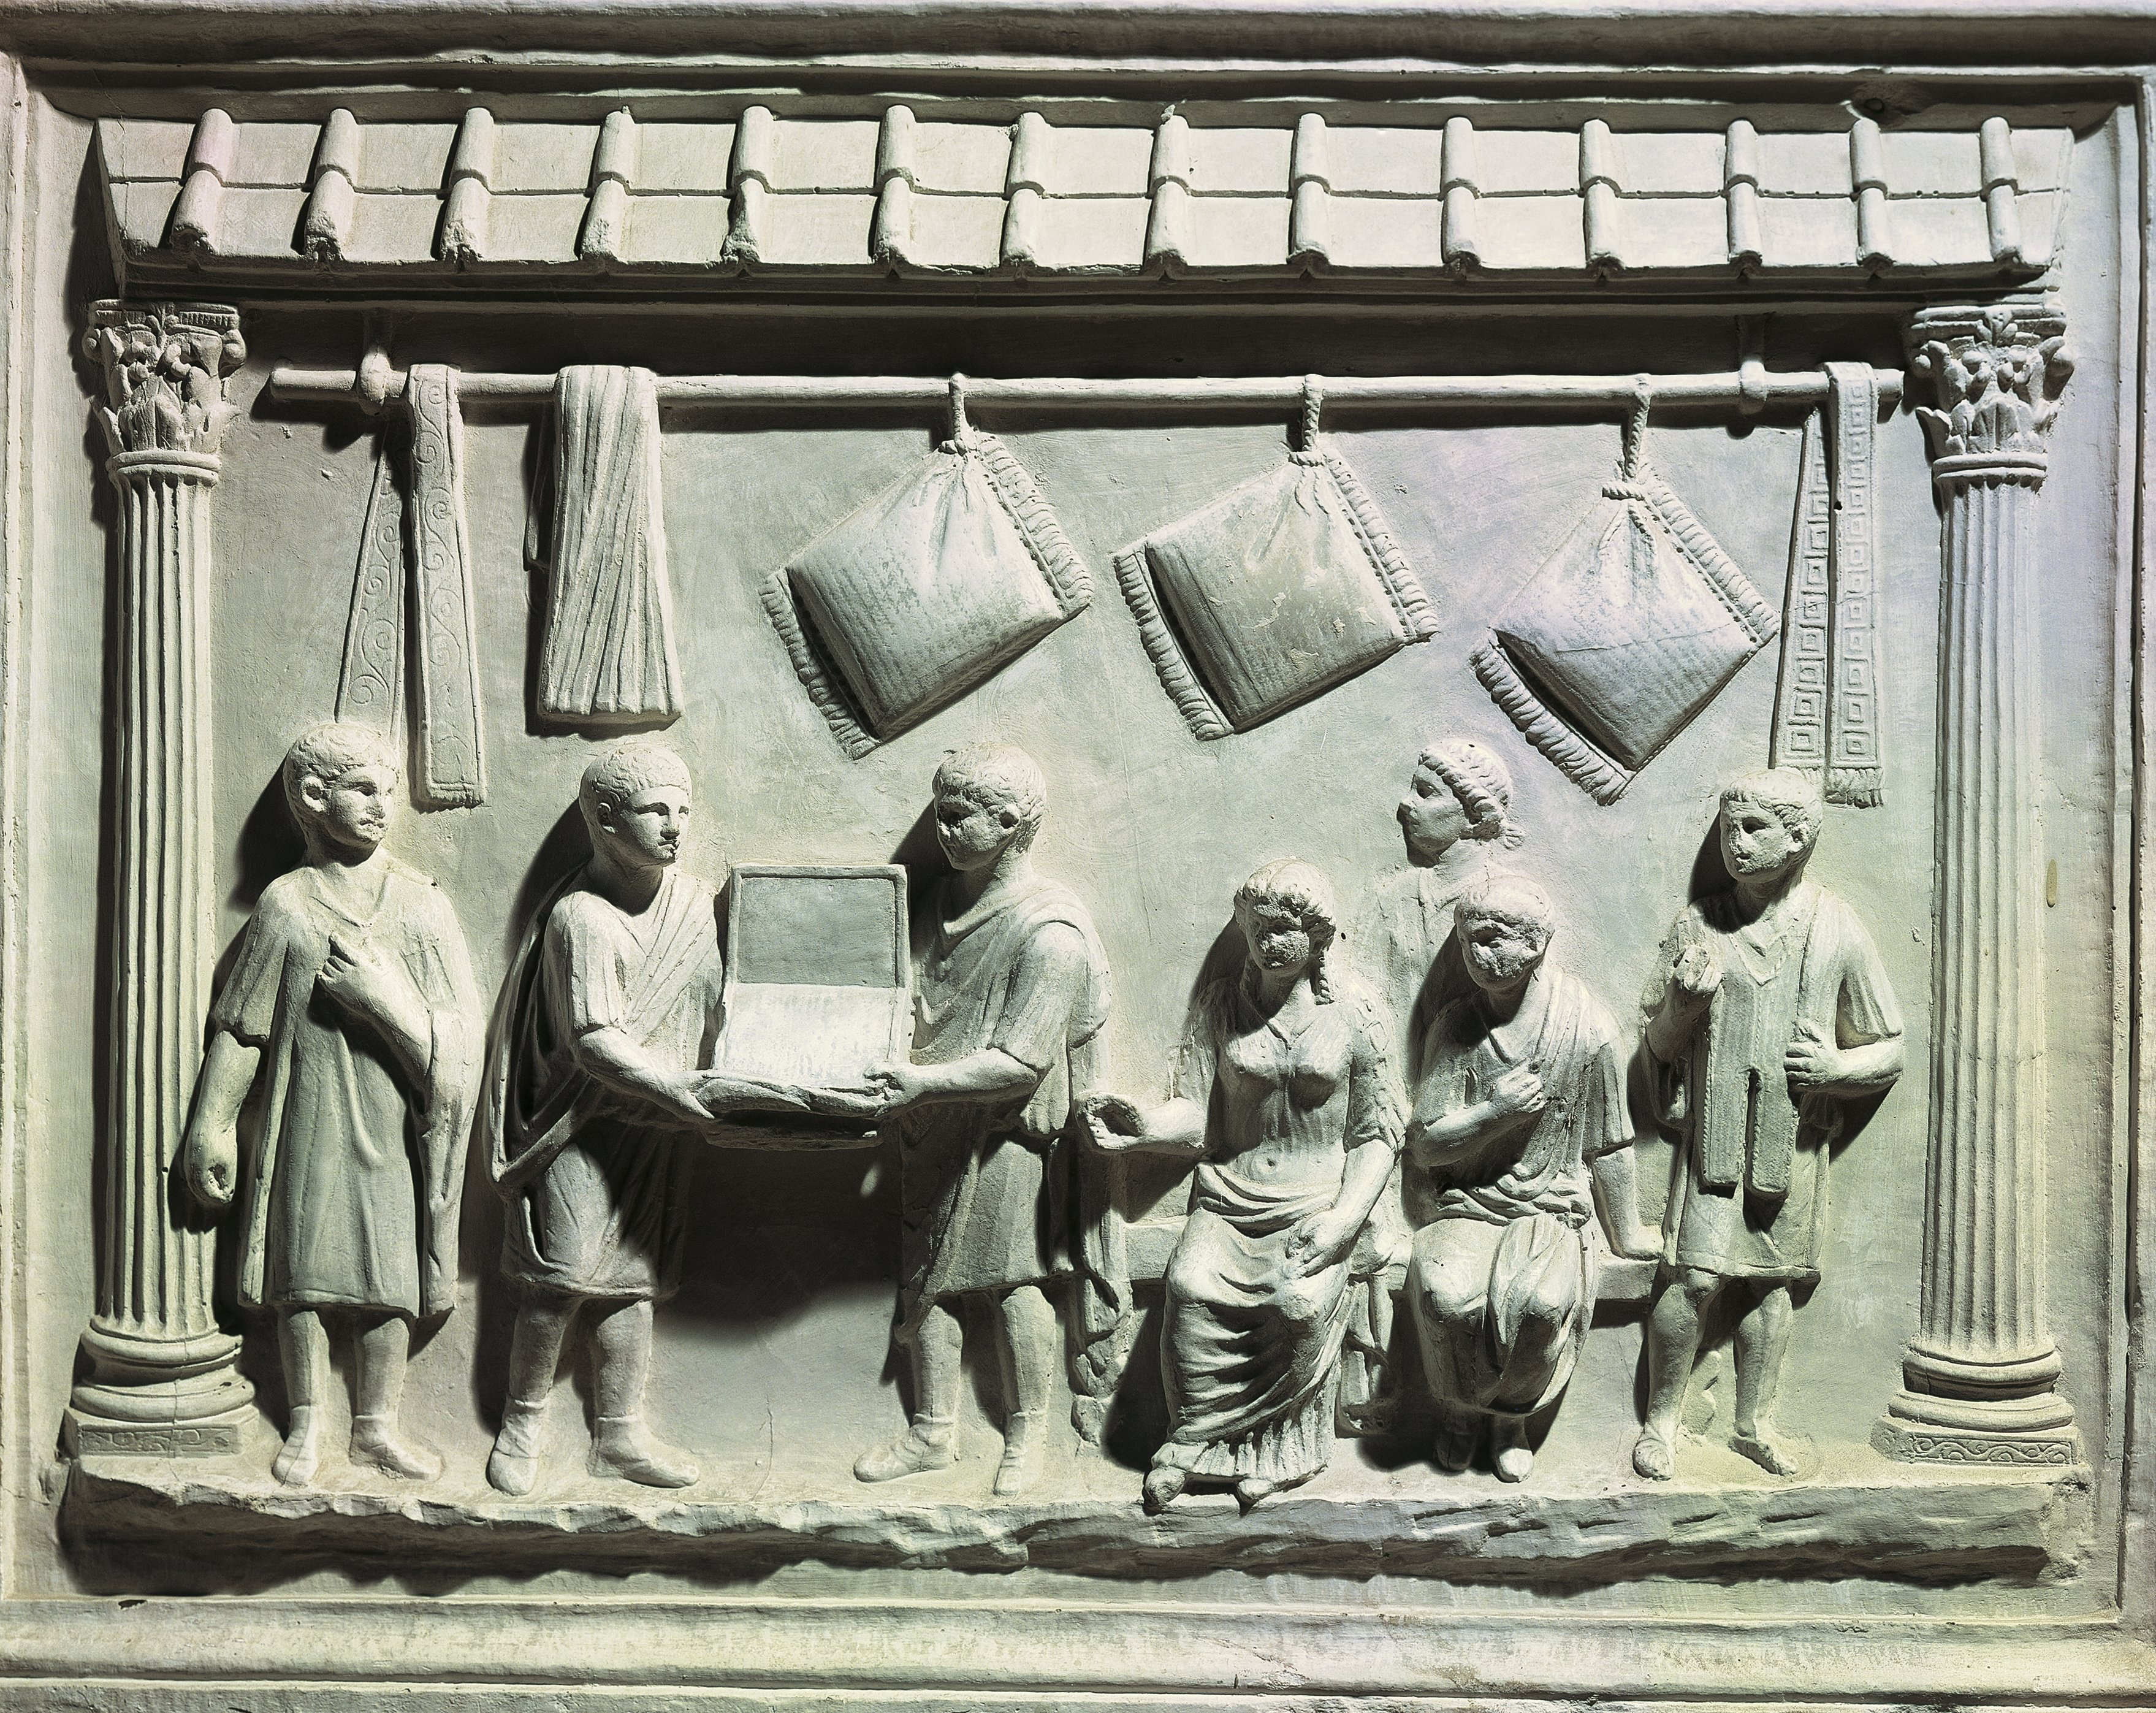 Relief depicting interior of belt and cushion shop, with owner and clerks showing goods to seated buyers and slaves